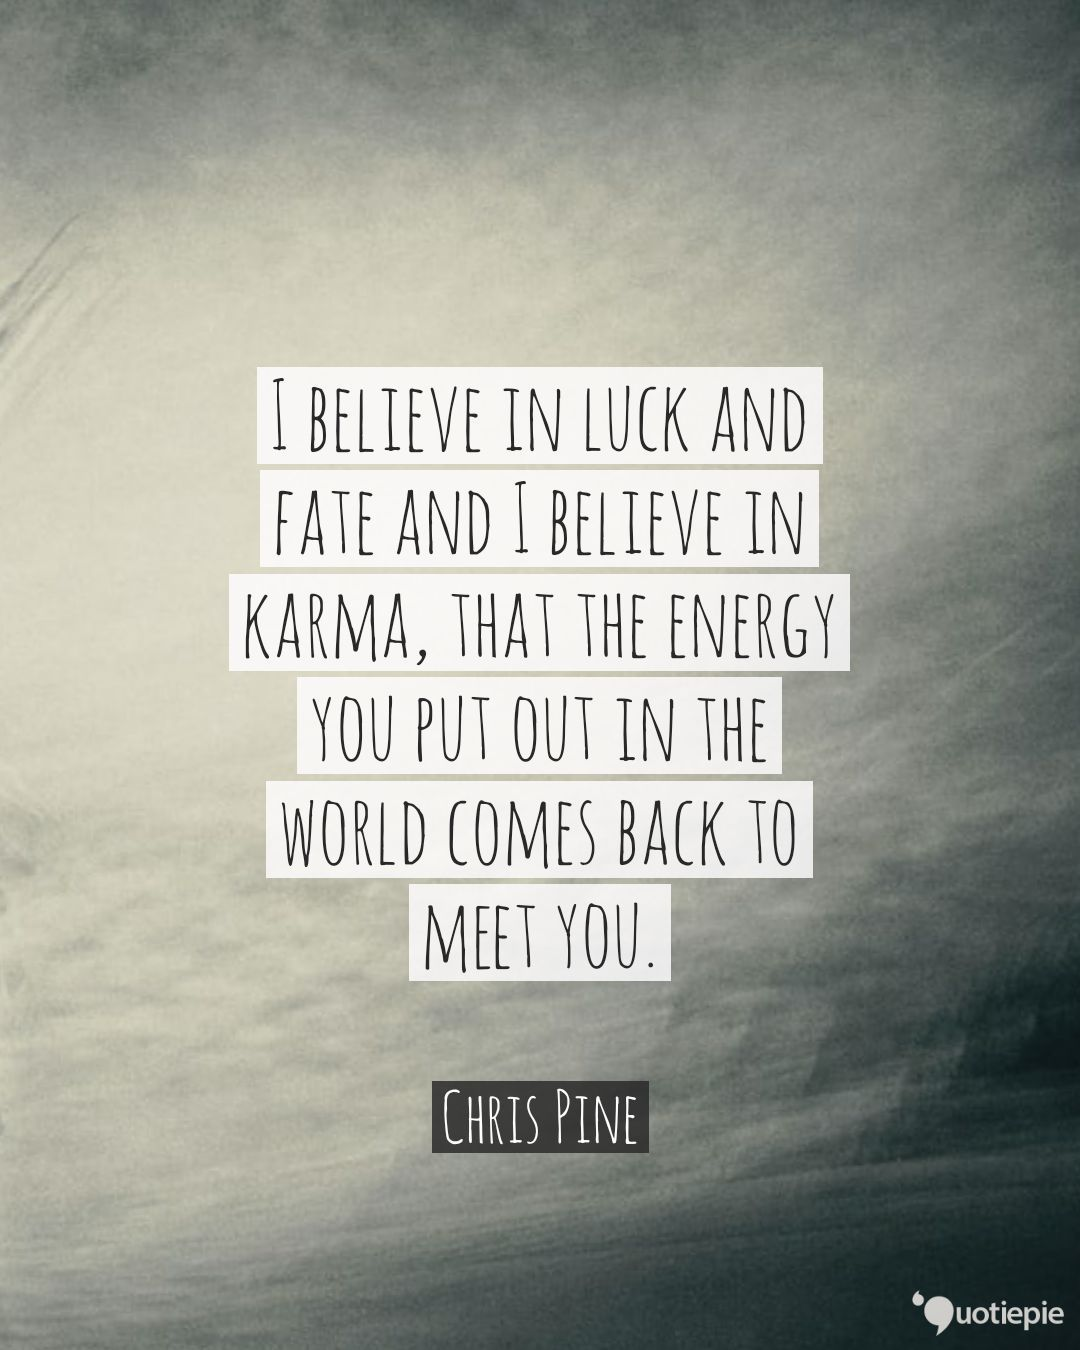 I Believe In Luck And Fate And I Believe In Karma That The Energy You Put Out In The World Comes Back To Meet You Karma Quotes Done Quotes Believe Quotes